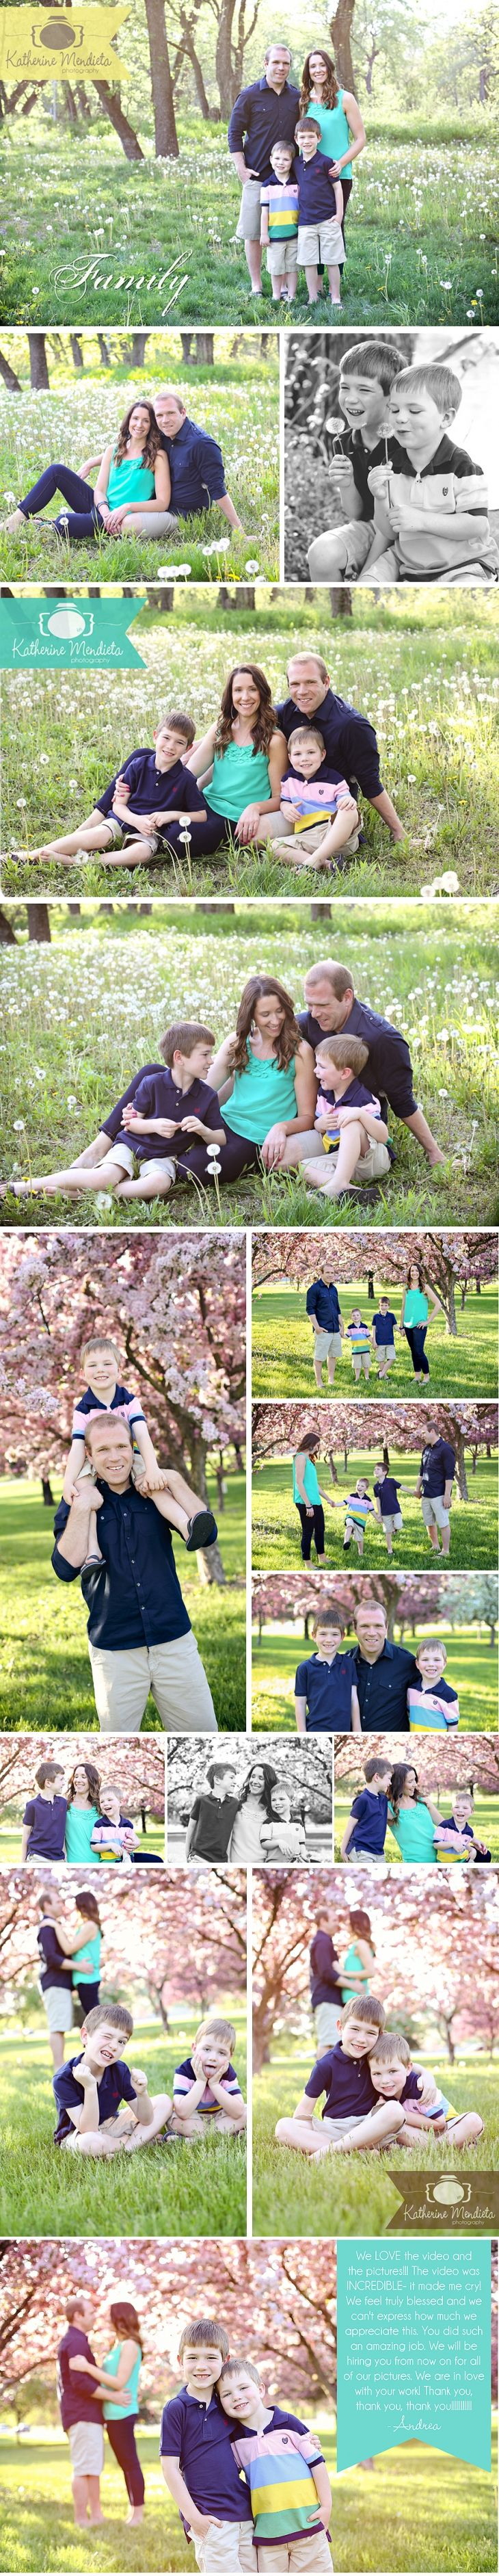 Family photo session with two little boys, dandelion field, flowering pink crabapple trees, love and laughter. Visit www.katherinemphoto.com for more pictures!